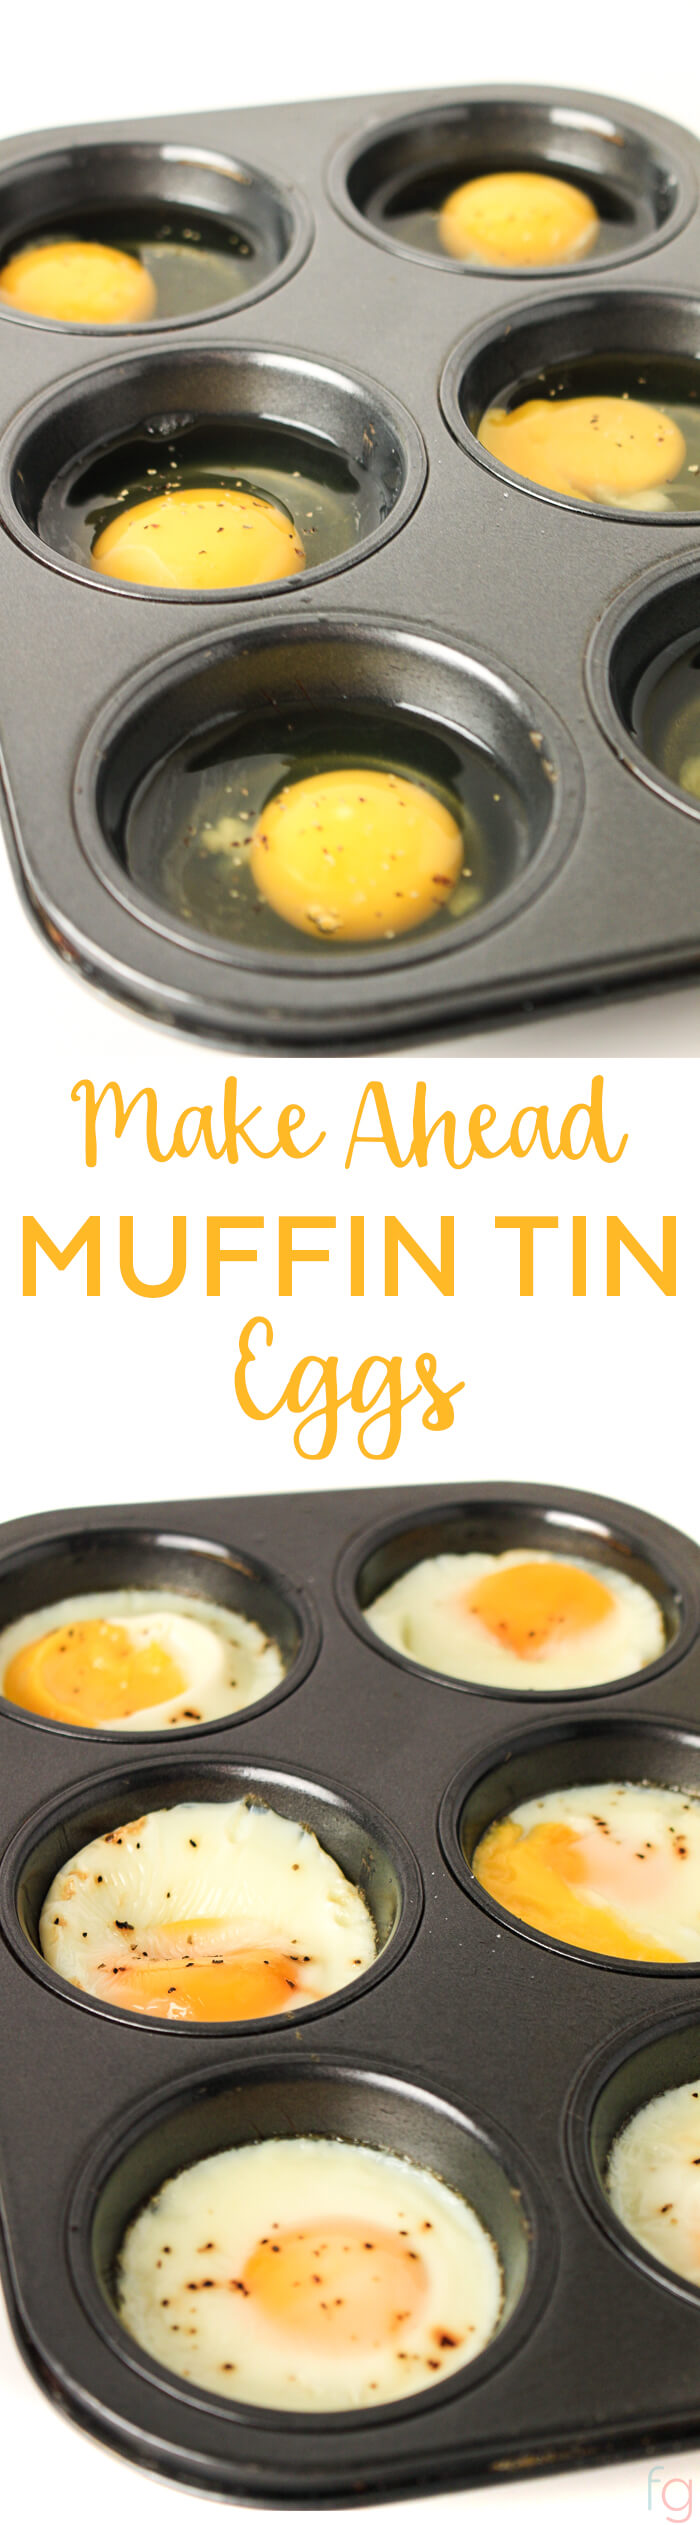 Make Ahead Breakfast - Meal Prep for the Week - Baked Eggs in Muffin Tin - Baked Eggs in Oven - Egg Cups Breakfast - Baked Egg Muffins - Make Ahead Meals